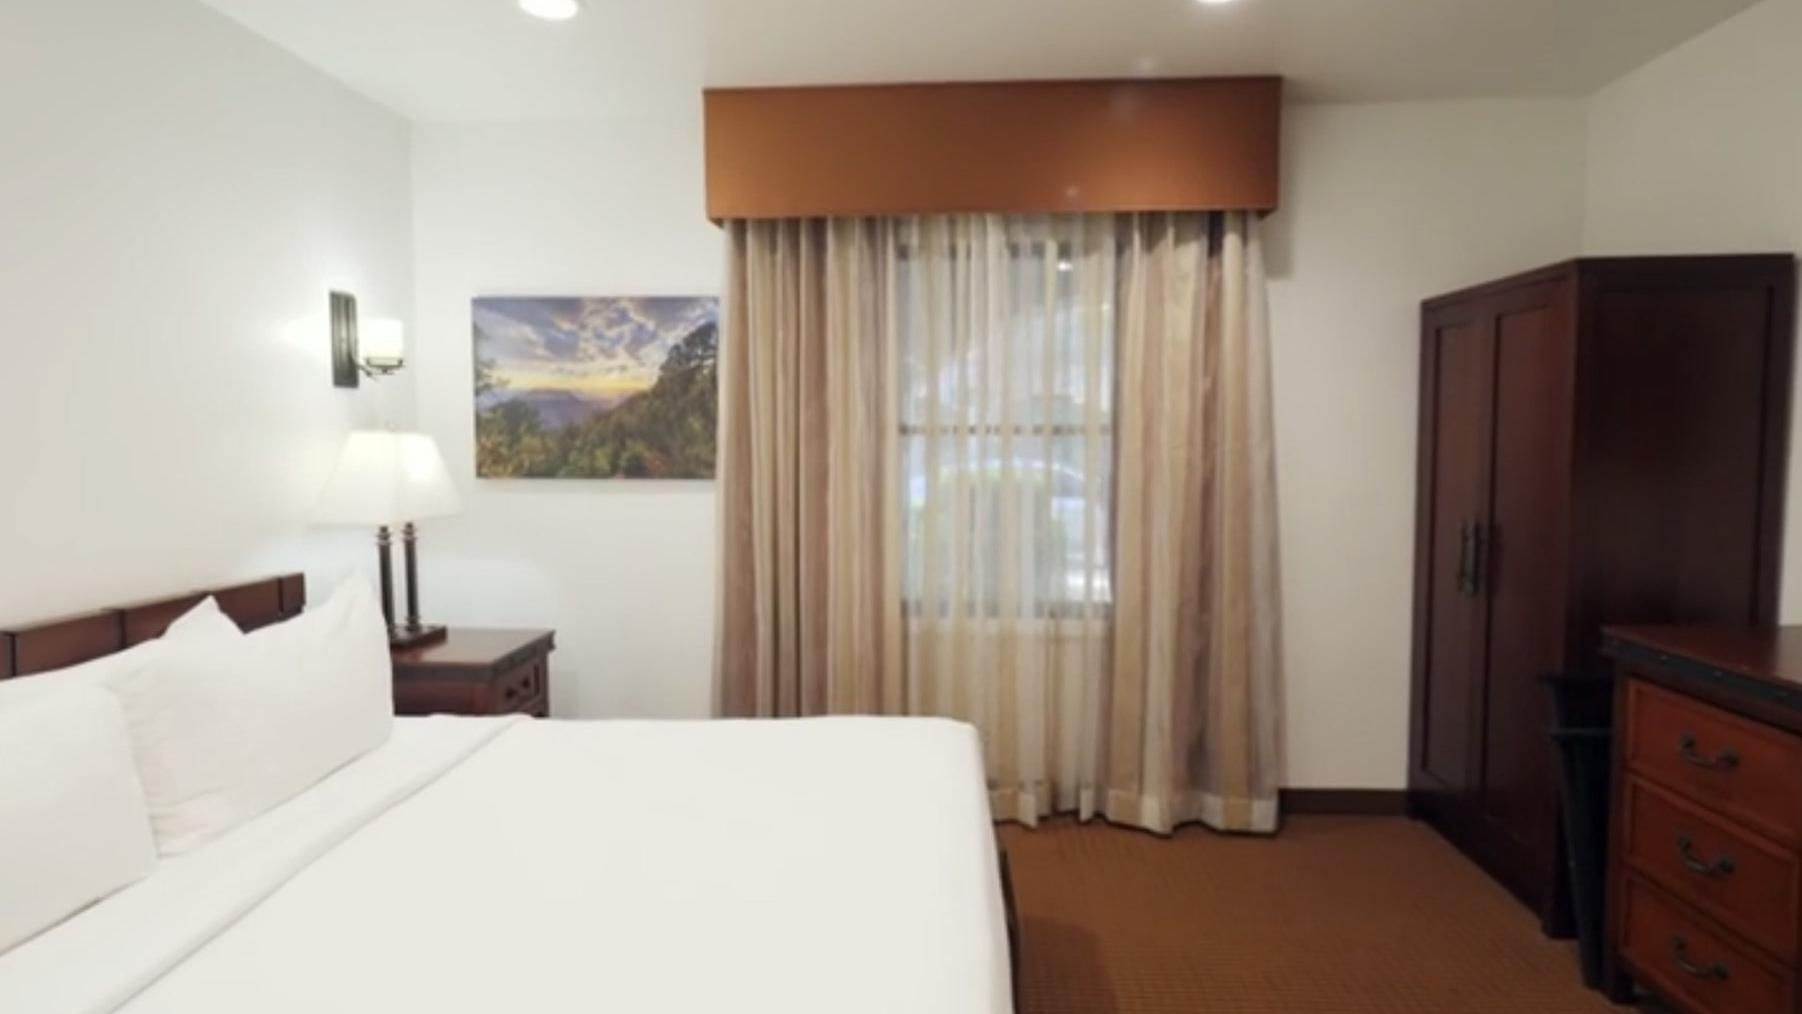 Neutral-colored Sedona hotel room with king bed, wardrobe and dresser